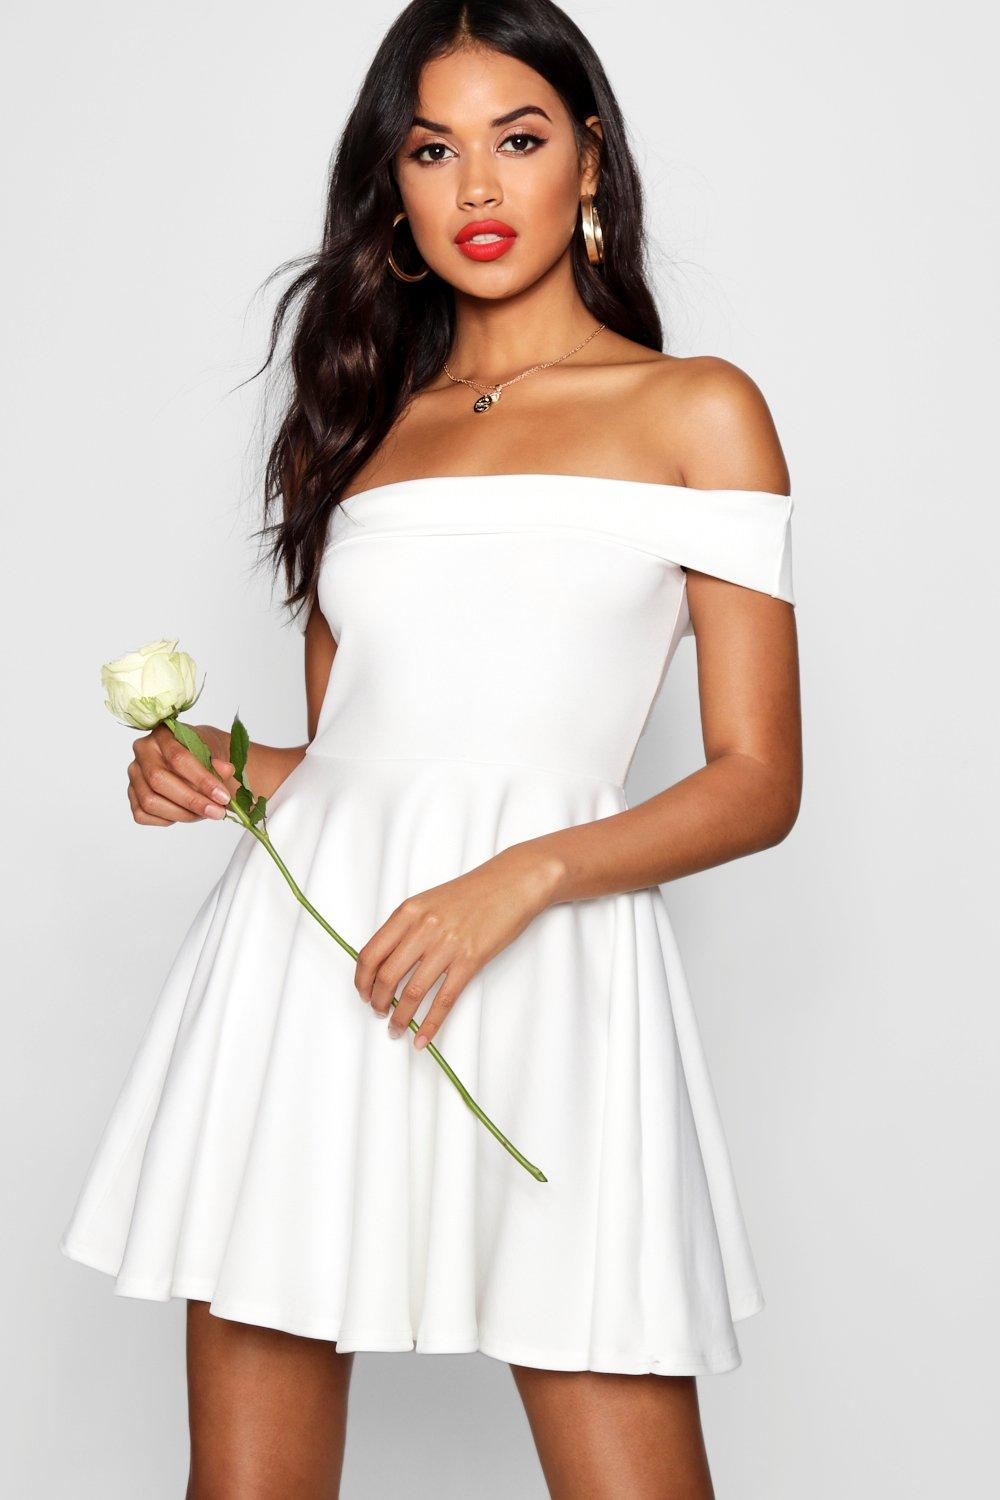 Boohoo's fashion is fun and accessible, super affordable and massively varied. Whatever your size, shape or look, Boohoo has it all. As well as dresses, shoes and accessories, Boohoo have their own beauty brand, a fitness collection, boutique lines and much more.